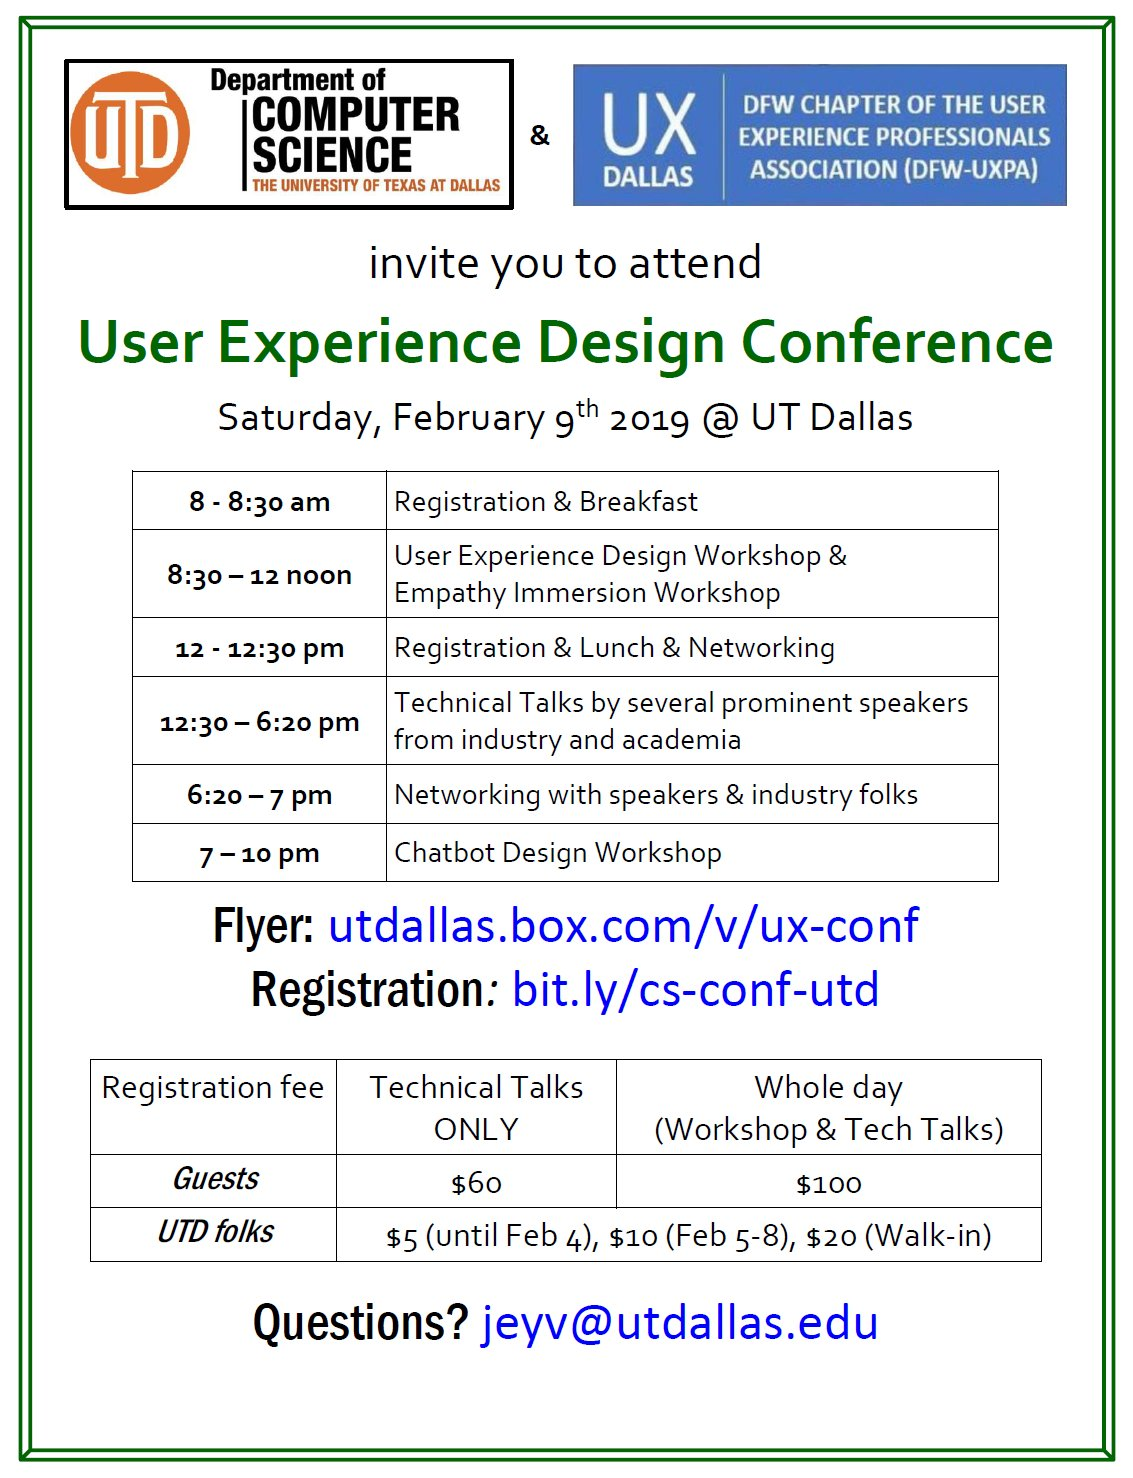 User Experience Design Conference @ UT Dallas ECSS